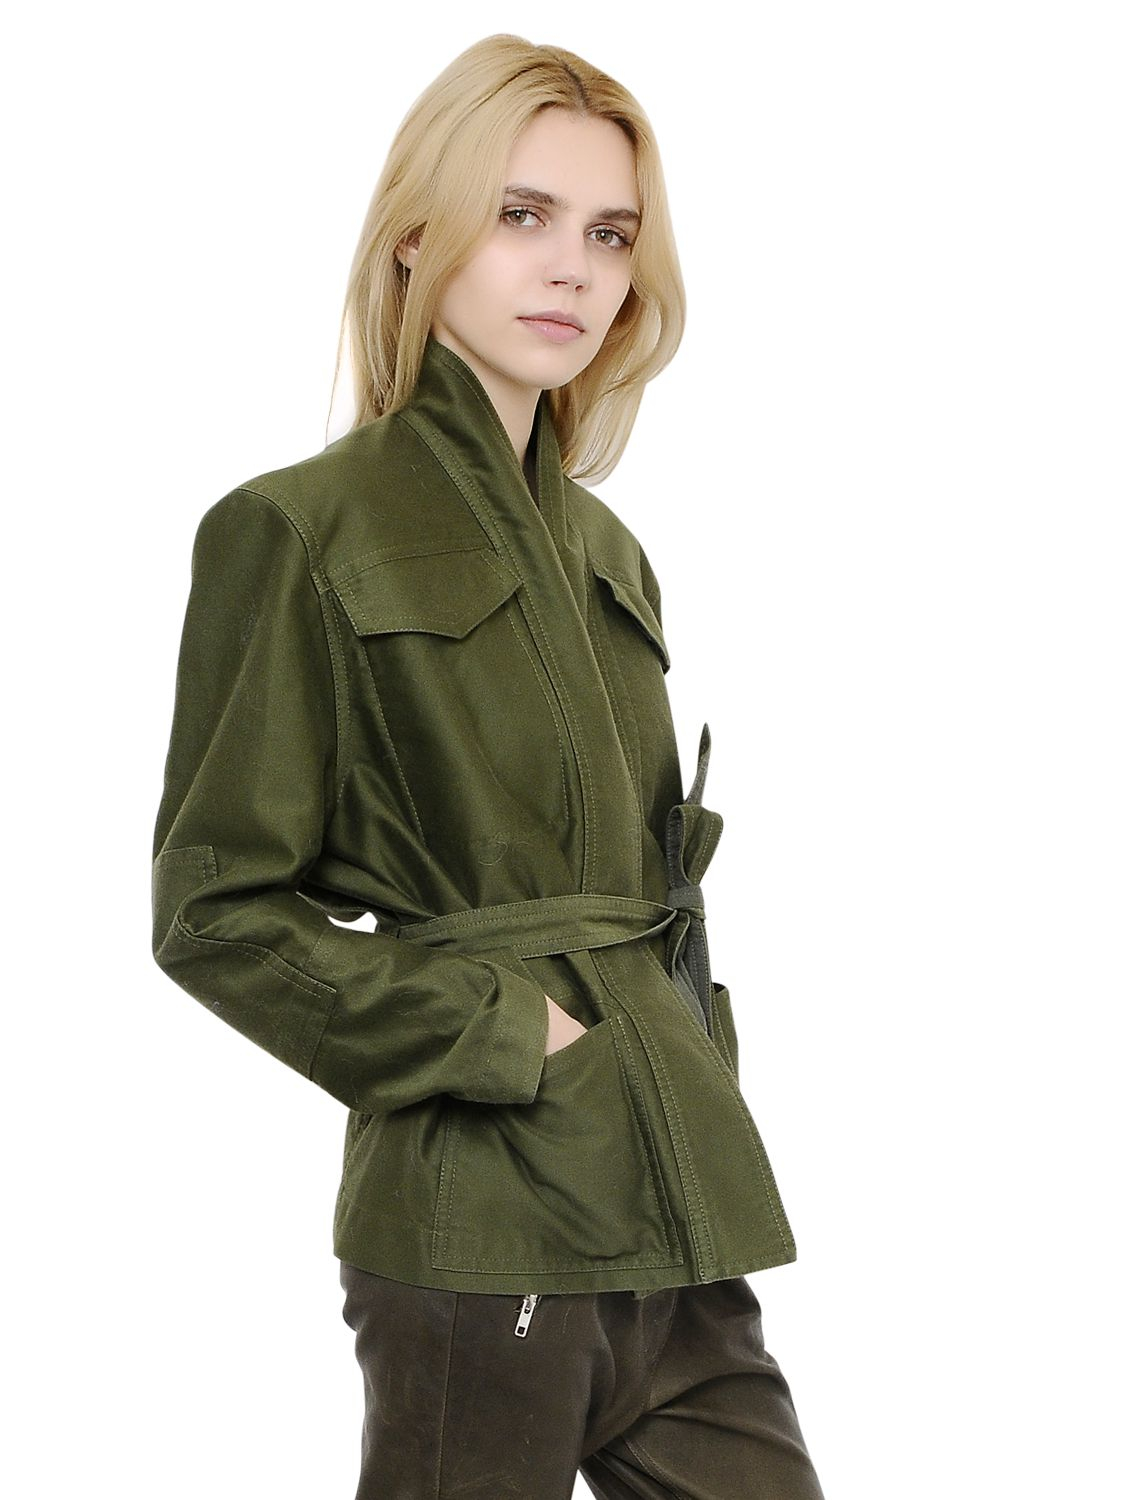 Isabel marant Cotton Sateen Military Jacket in Natural | Lyst